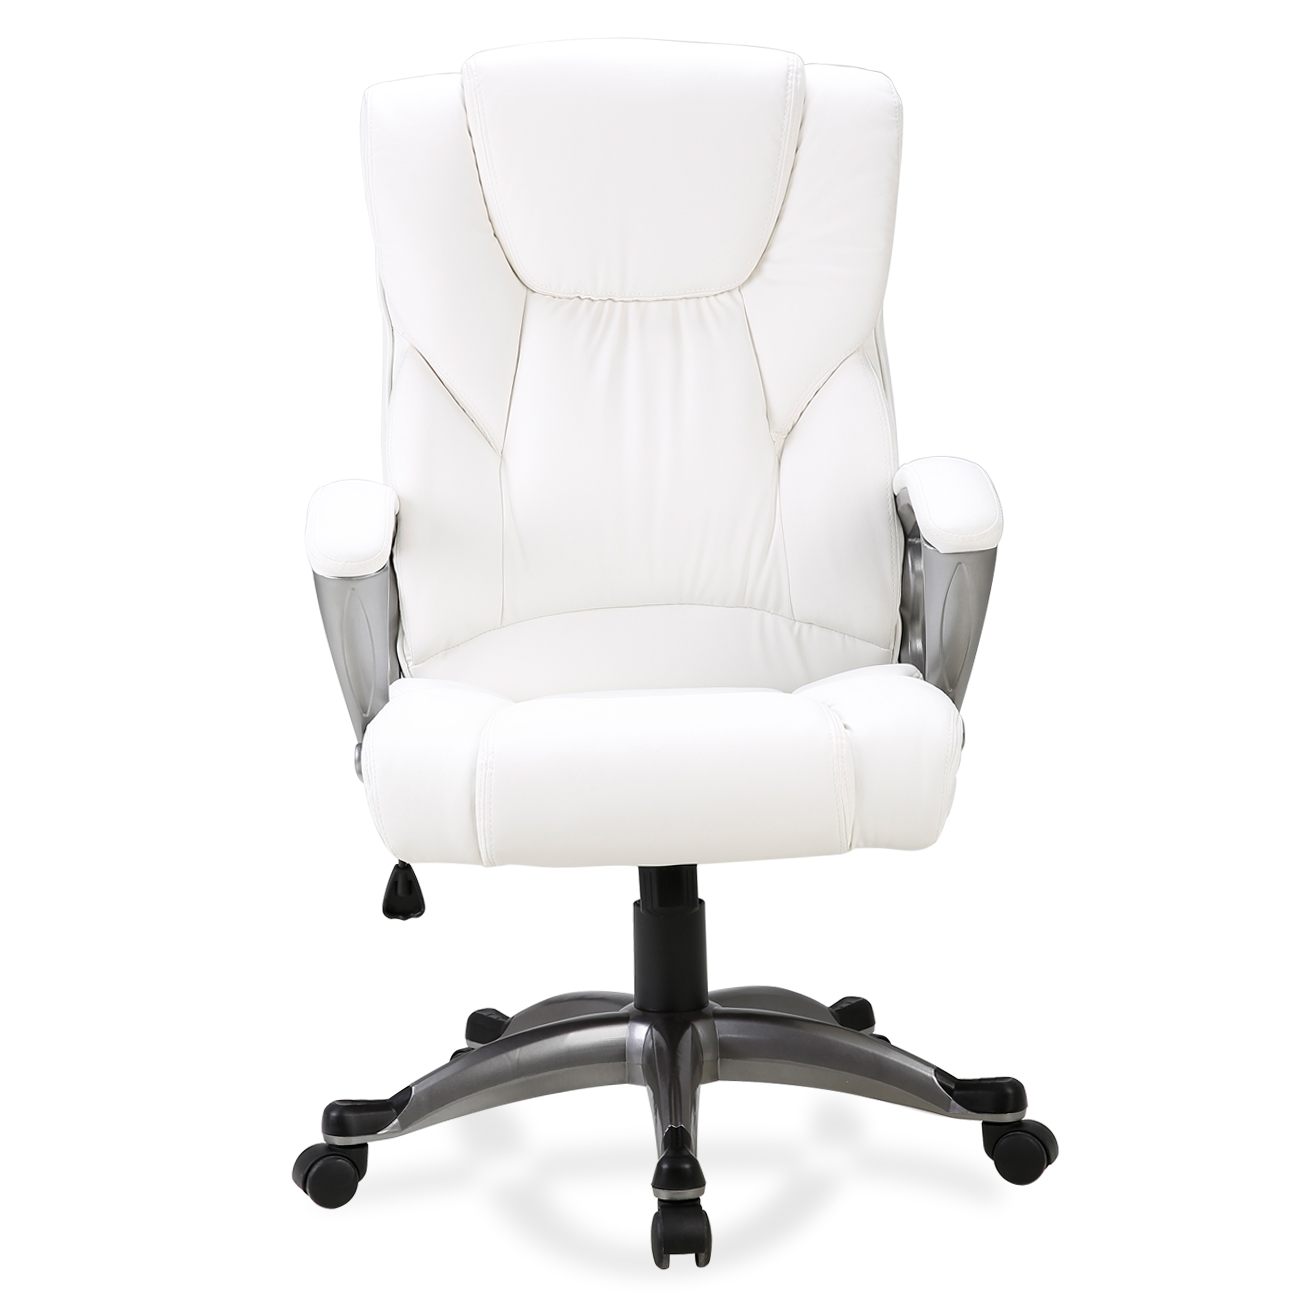 Details About Ergonomic Office Chair Pu Leather High Back Executive Computer Desk Task White